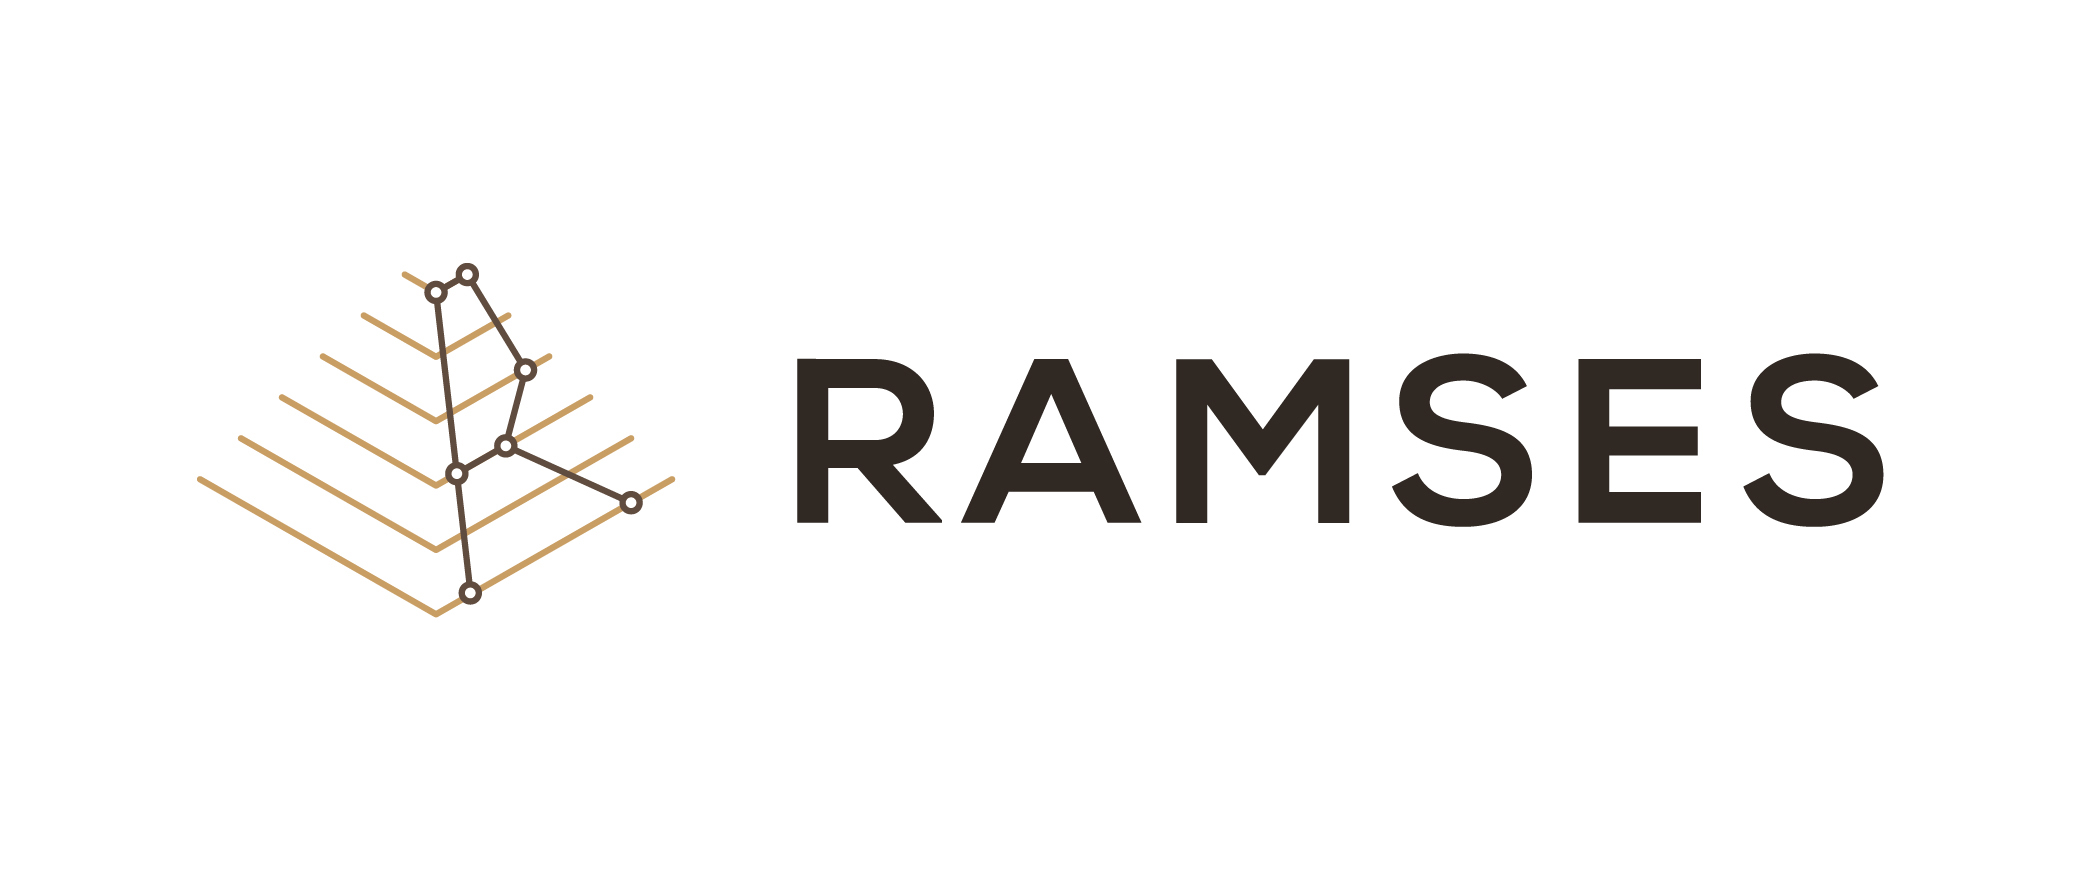 RAMSES: Malware analysis for digital forensics